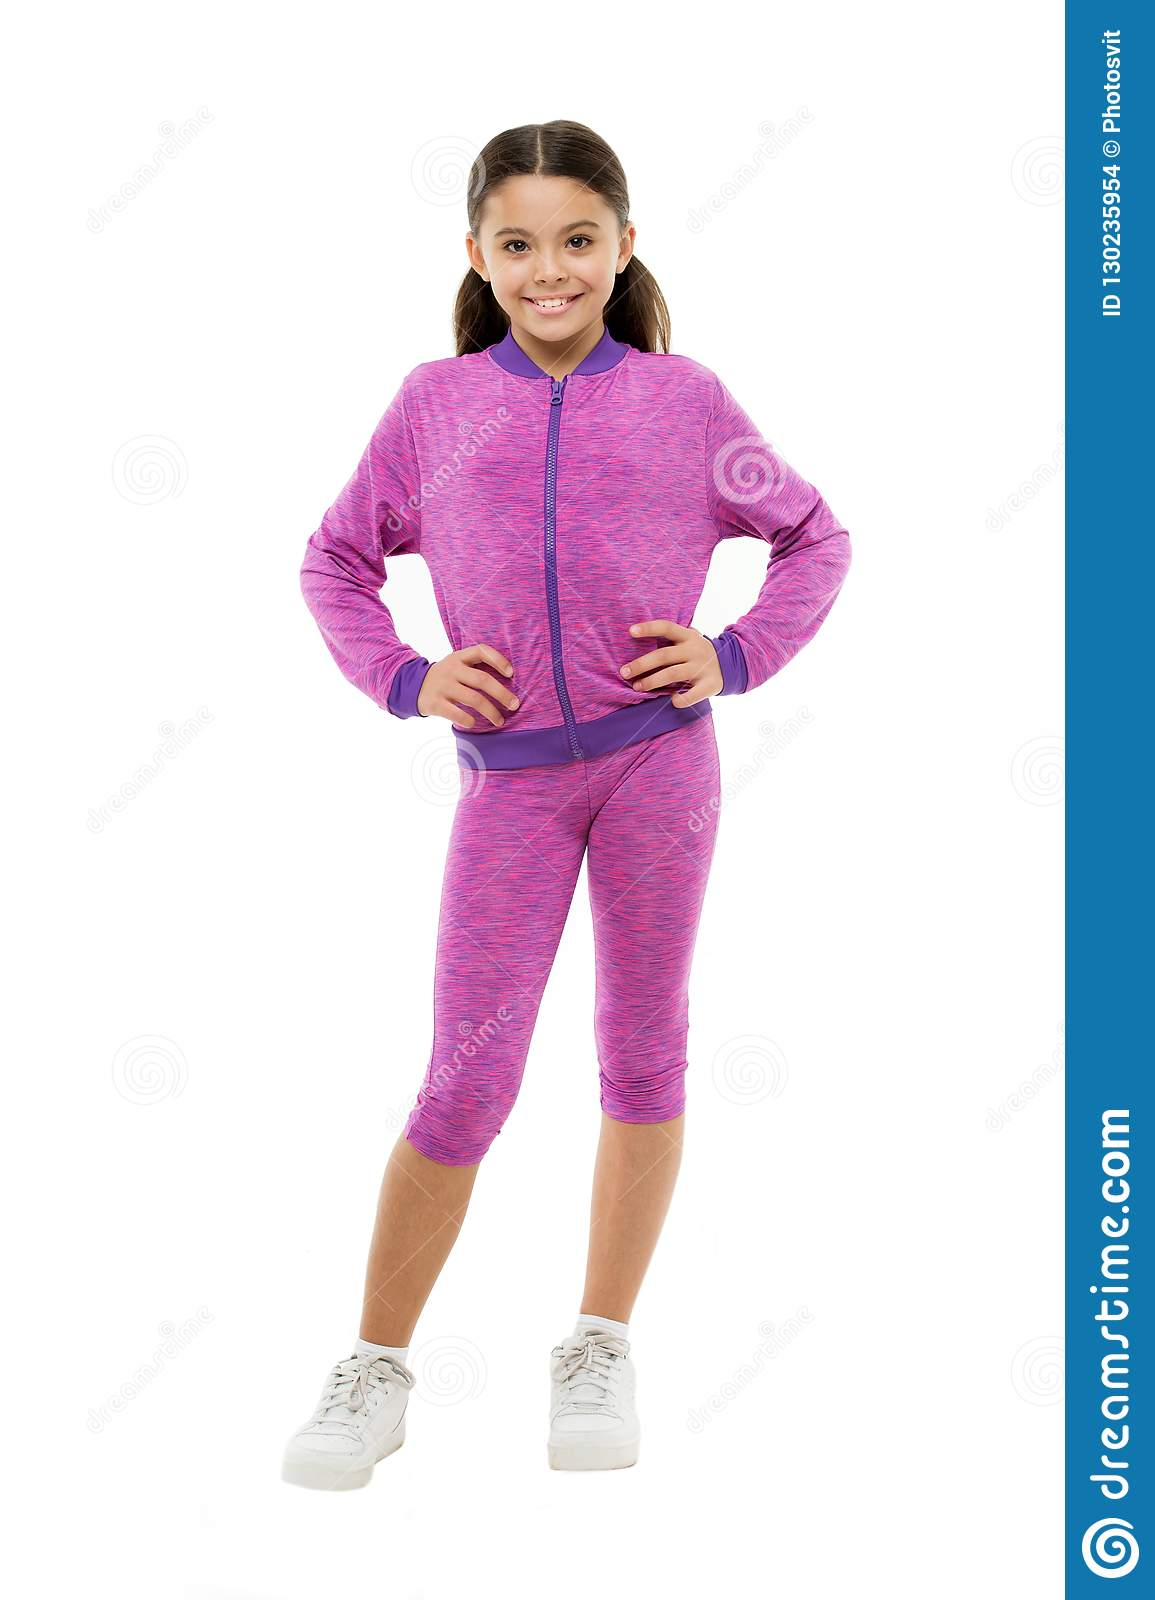 Deal with long hair while exercising. Girl cute kid with long ponytails wear sportive costume isolated on white. Working